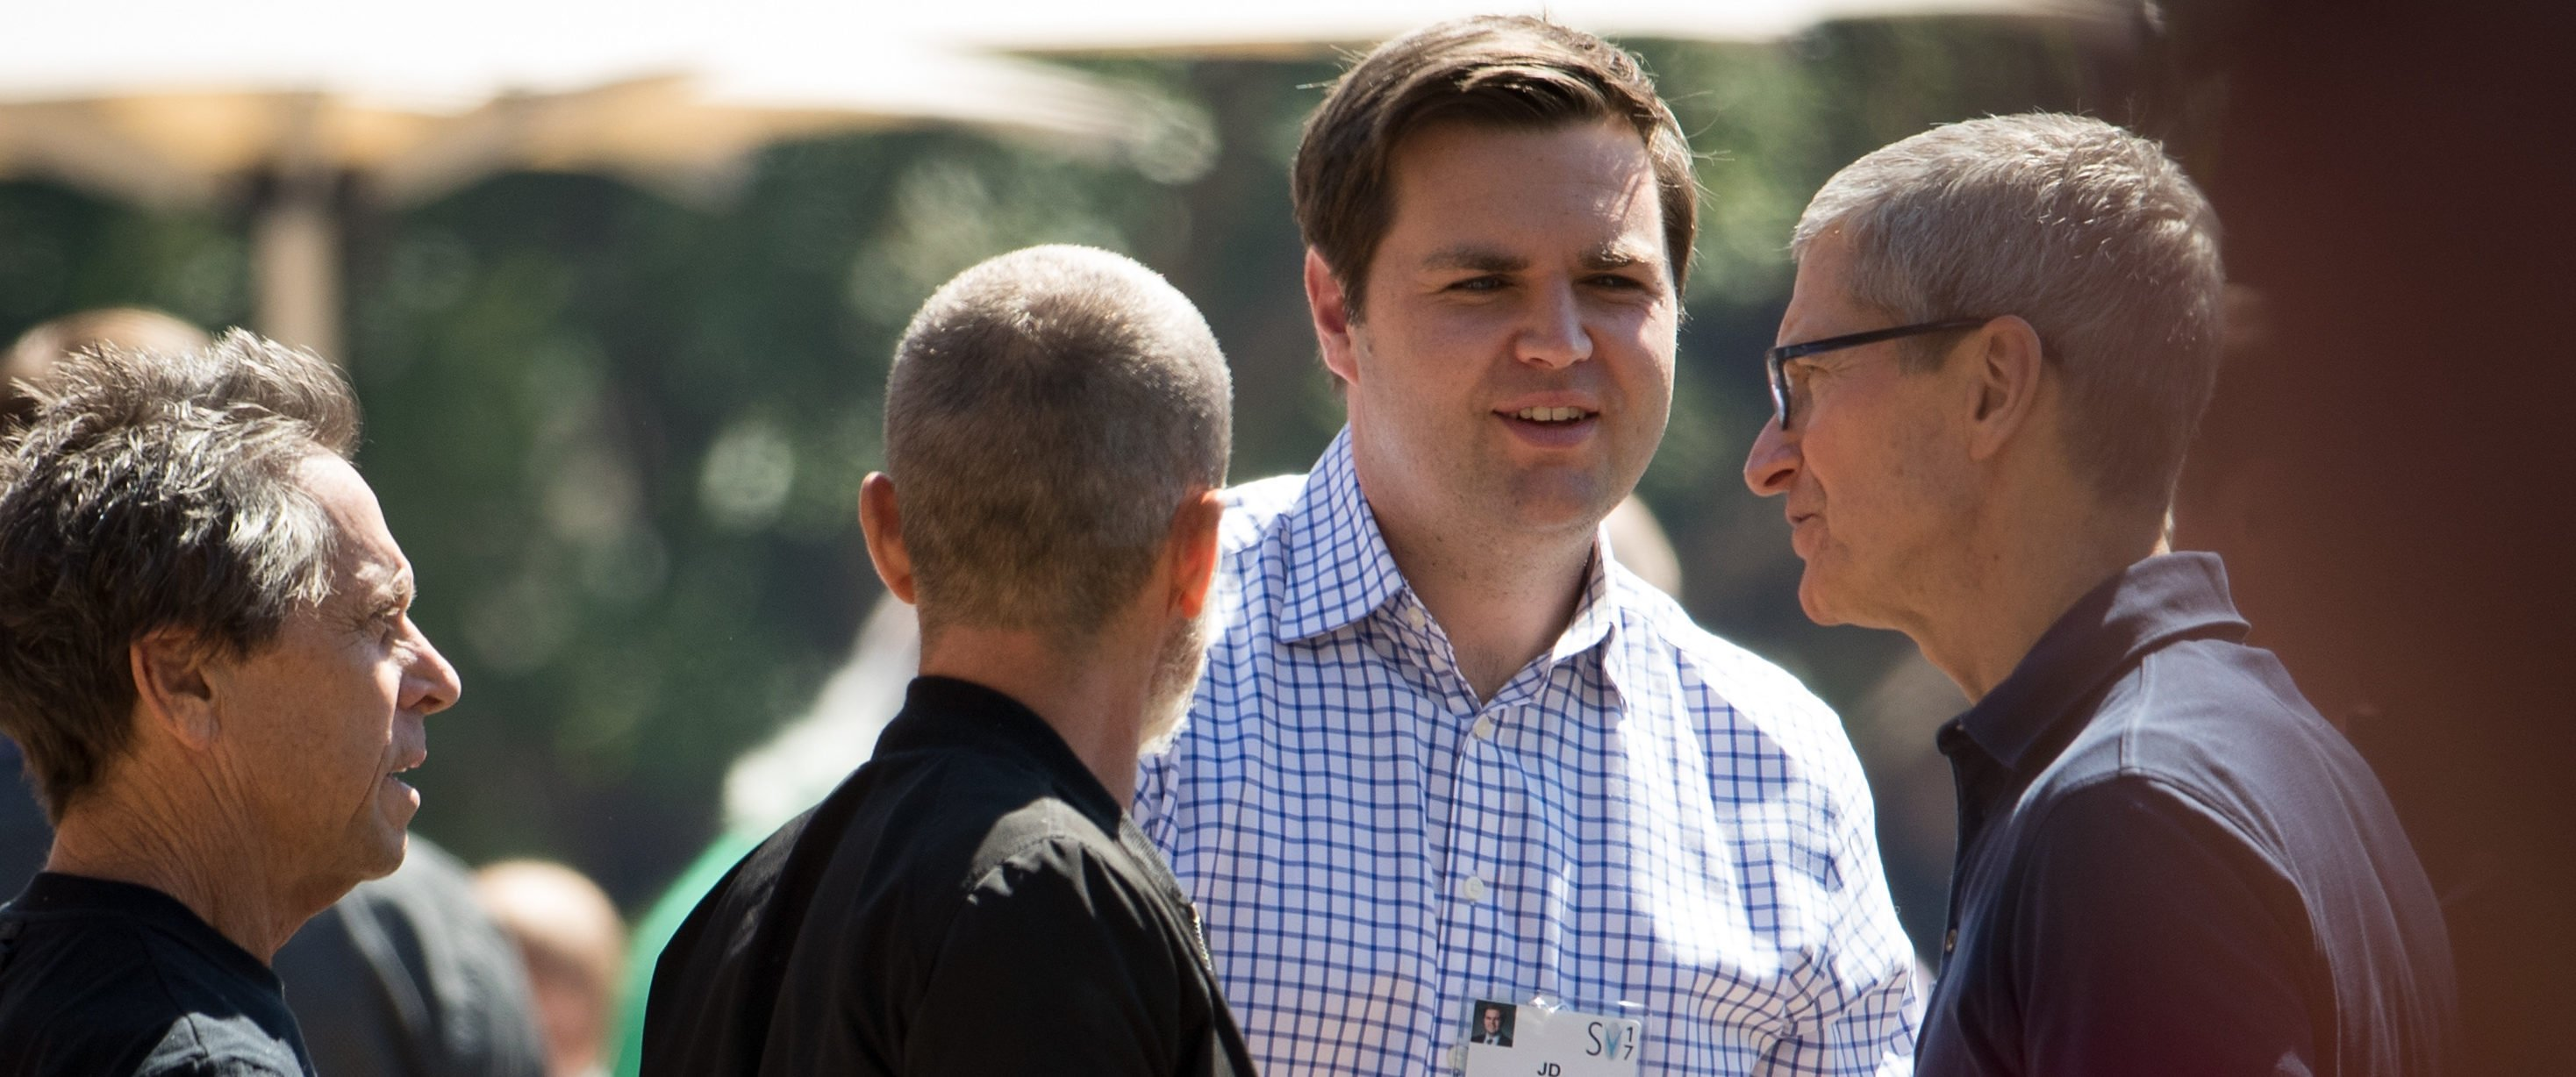 SUN VALLEY, ID - JULY 13: Venture capitalist and author JD Vance (2nd from R) shakes hands with Tim Cook (R), chief executive officer of Apple, on the third day of the annual Allen & Company Sun Valley Conference, July 13, 2017 in Sun Valley, Idaho. Every July, some of the world's most wealthy and powerful businesspeople from the media, finance, technology and political spheres converge at the Sun Valley Resort for the exclusive weeklong conference. (Photo by Drew Angerer/Getty Images)